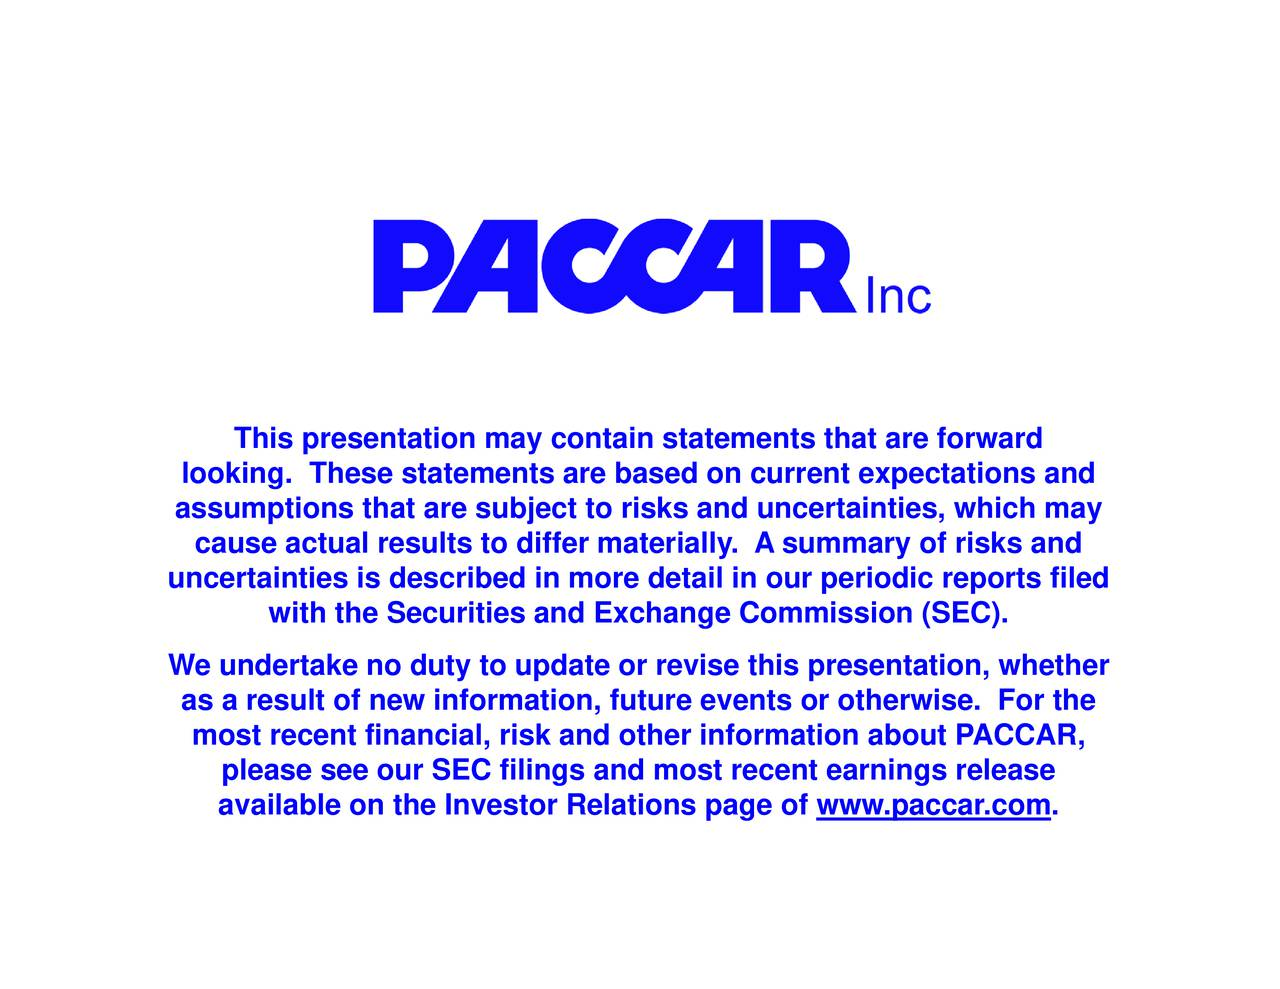 This presentation may coplease see our SEC filings and most recent earnings release cause actual rmost recent financial, risk and other information about PACCAR,. loassumuncertainties is described in more detail in our periodic reports filedherhe